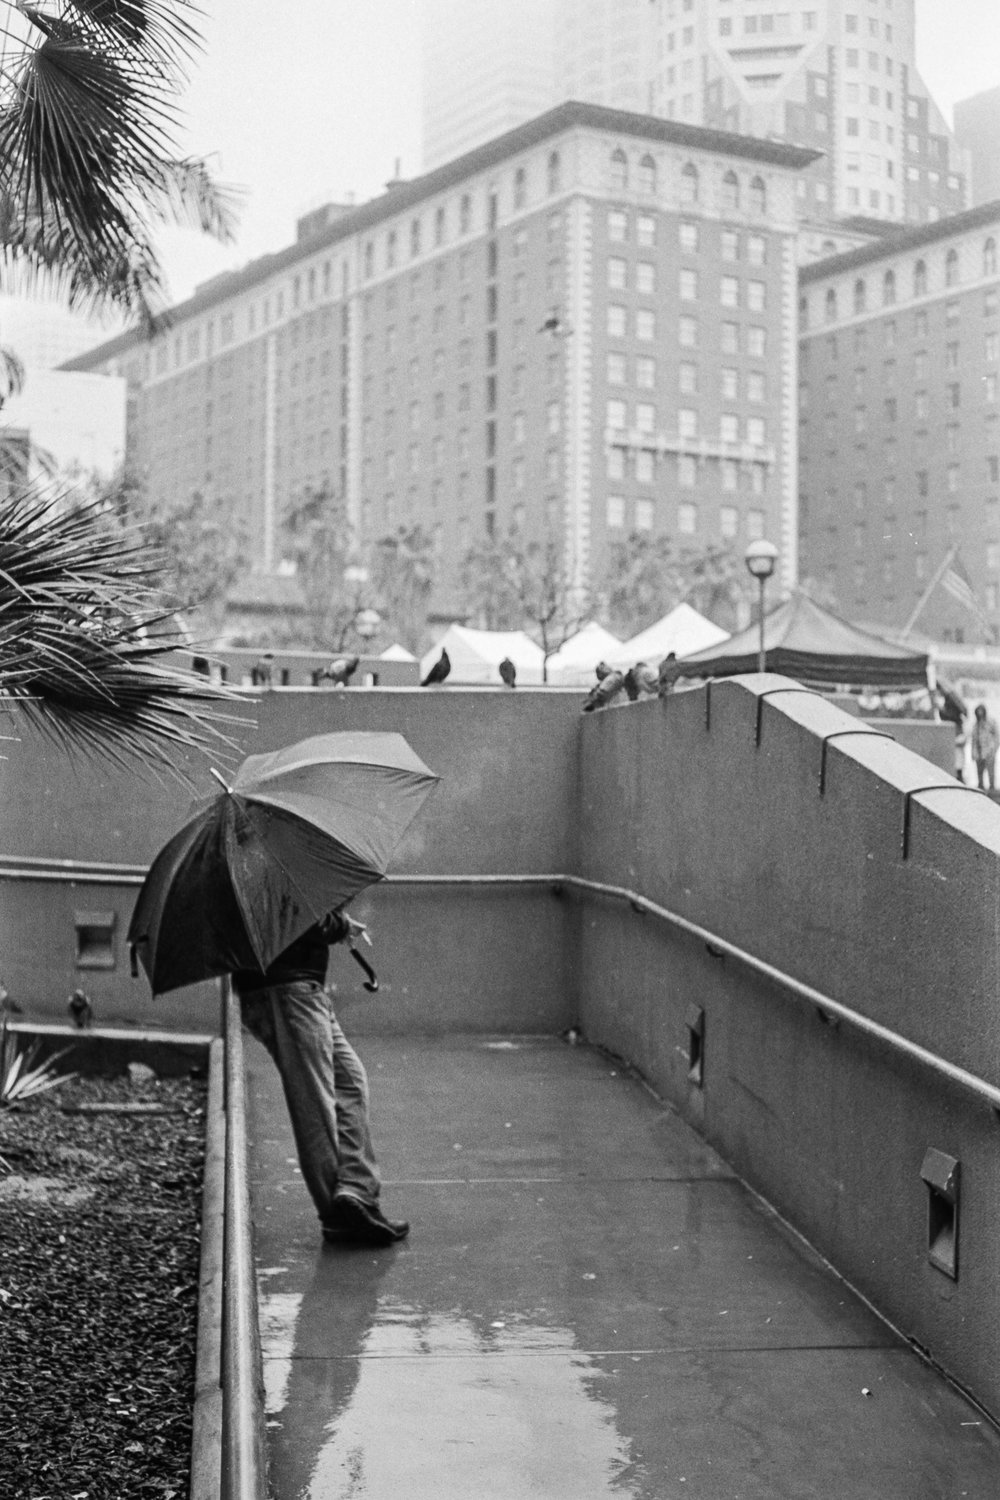 Pershing Square, Los Angeles, 2019.